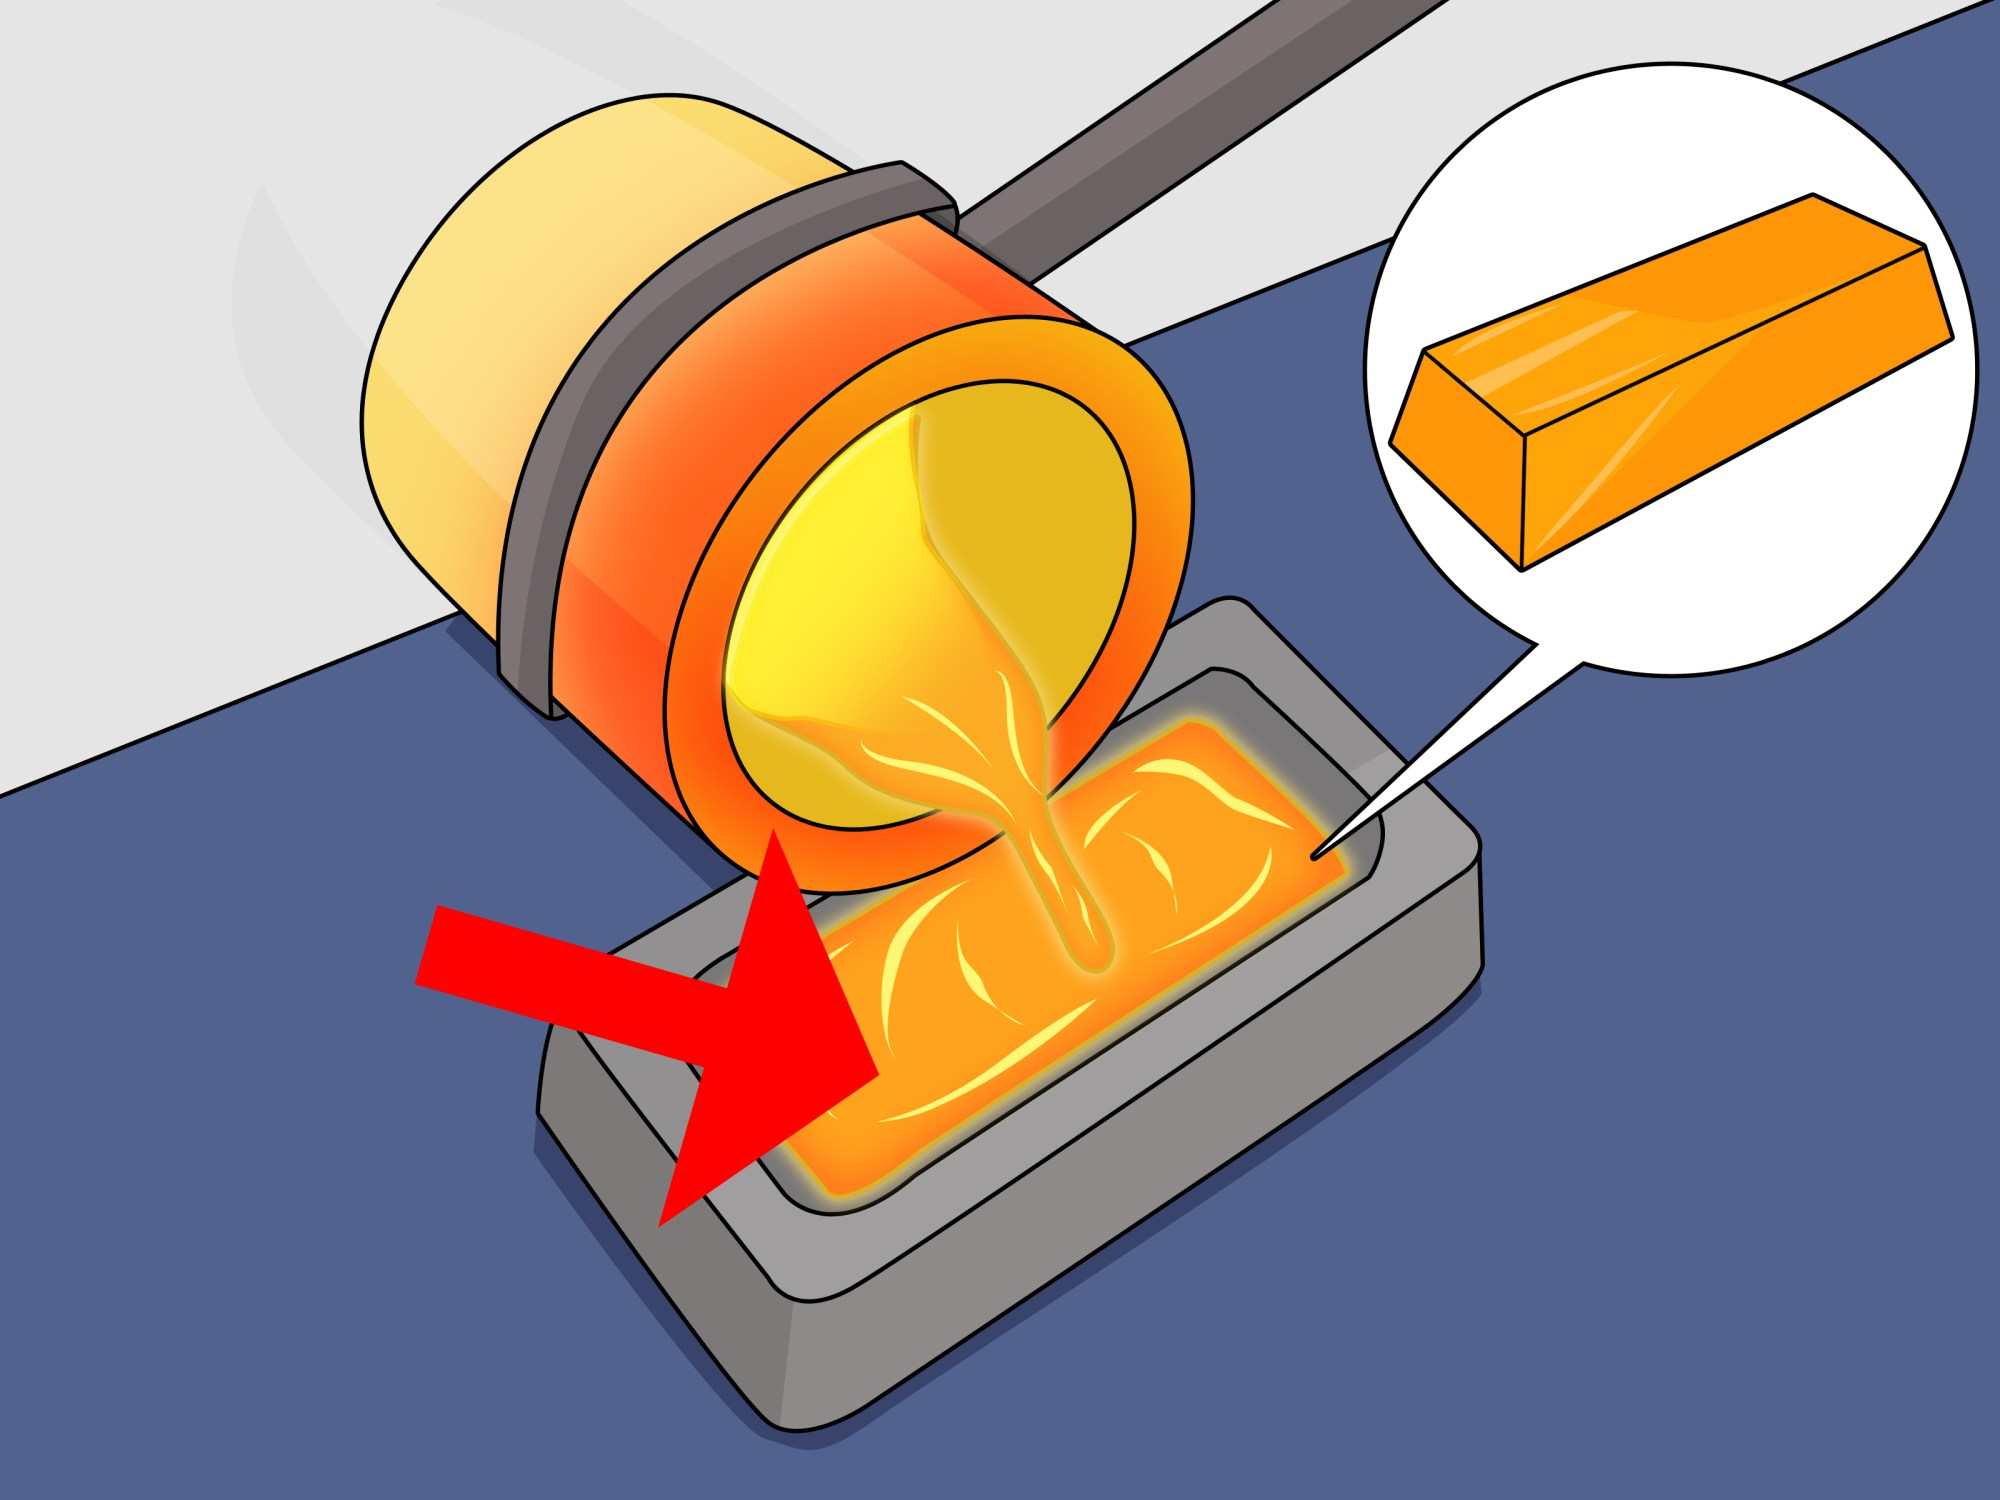 hight resolution of how to melt gold